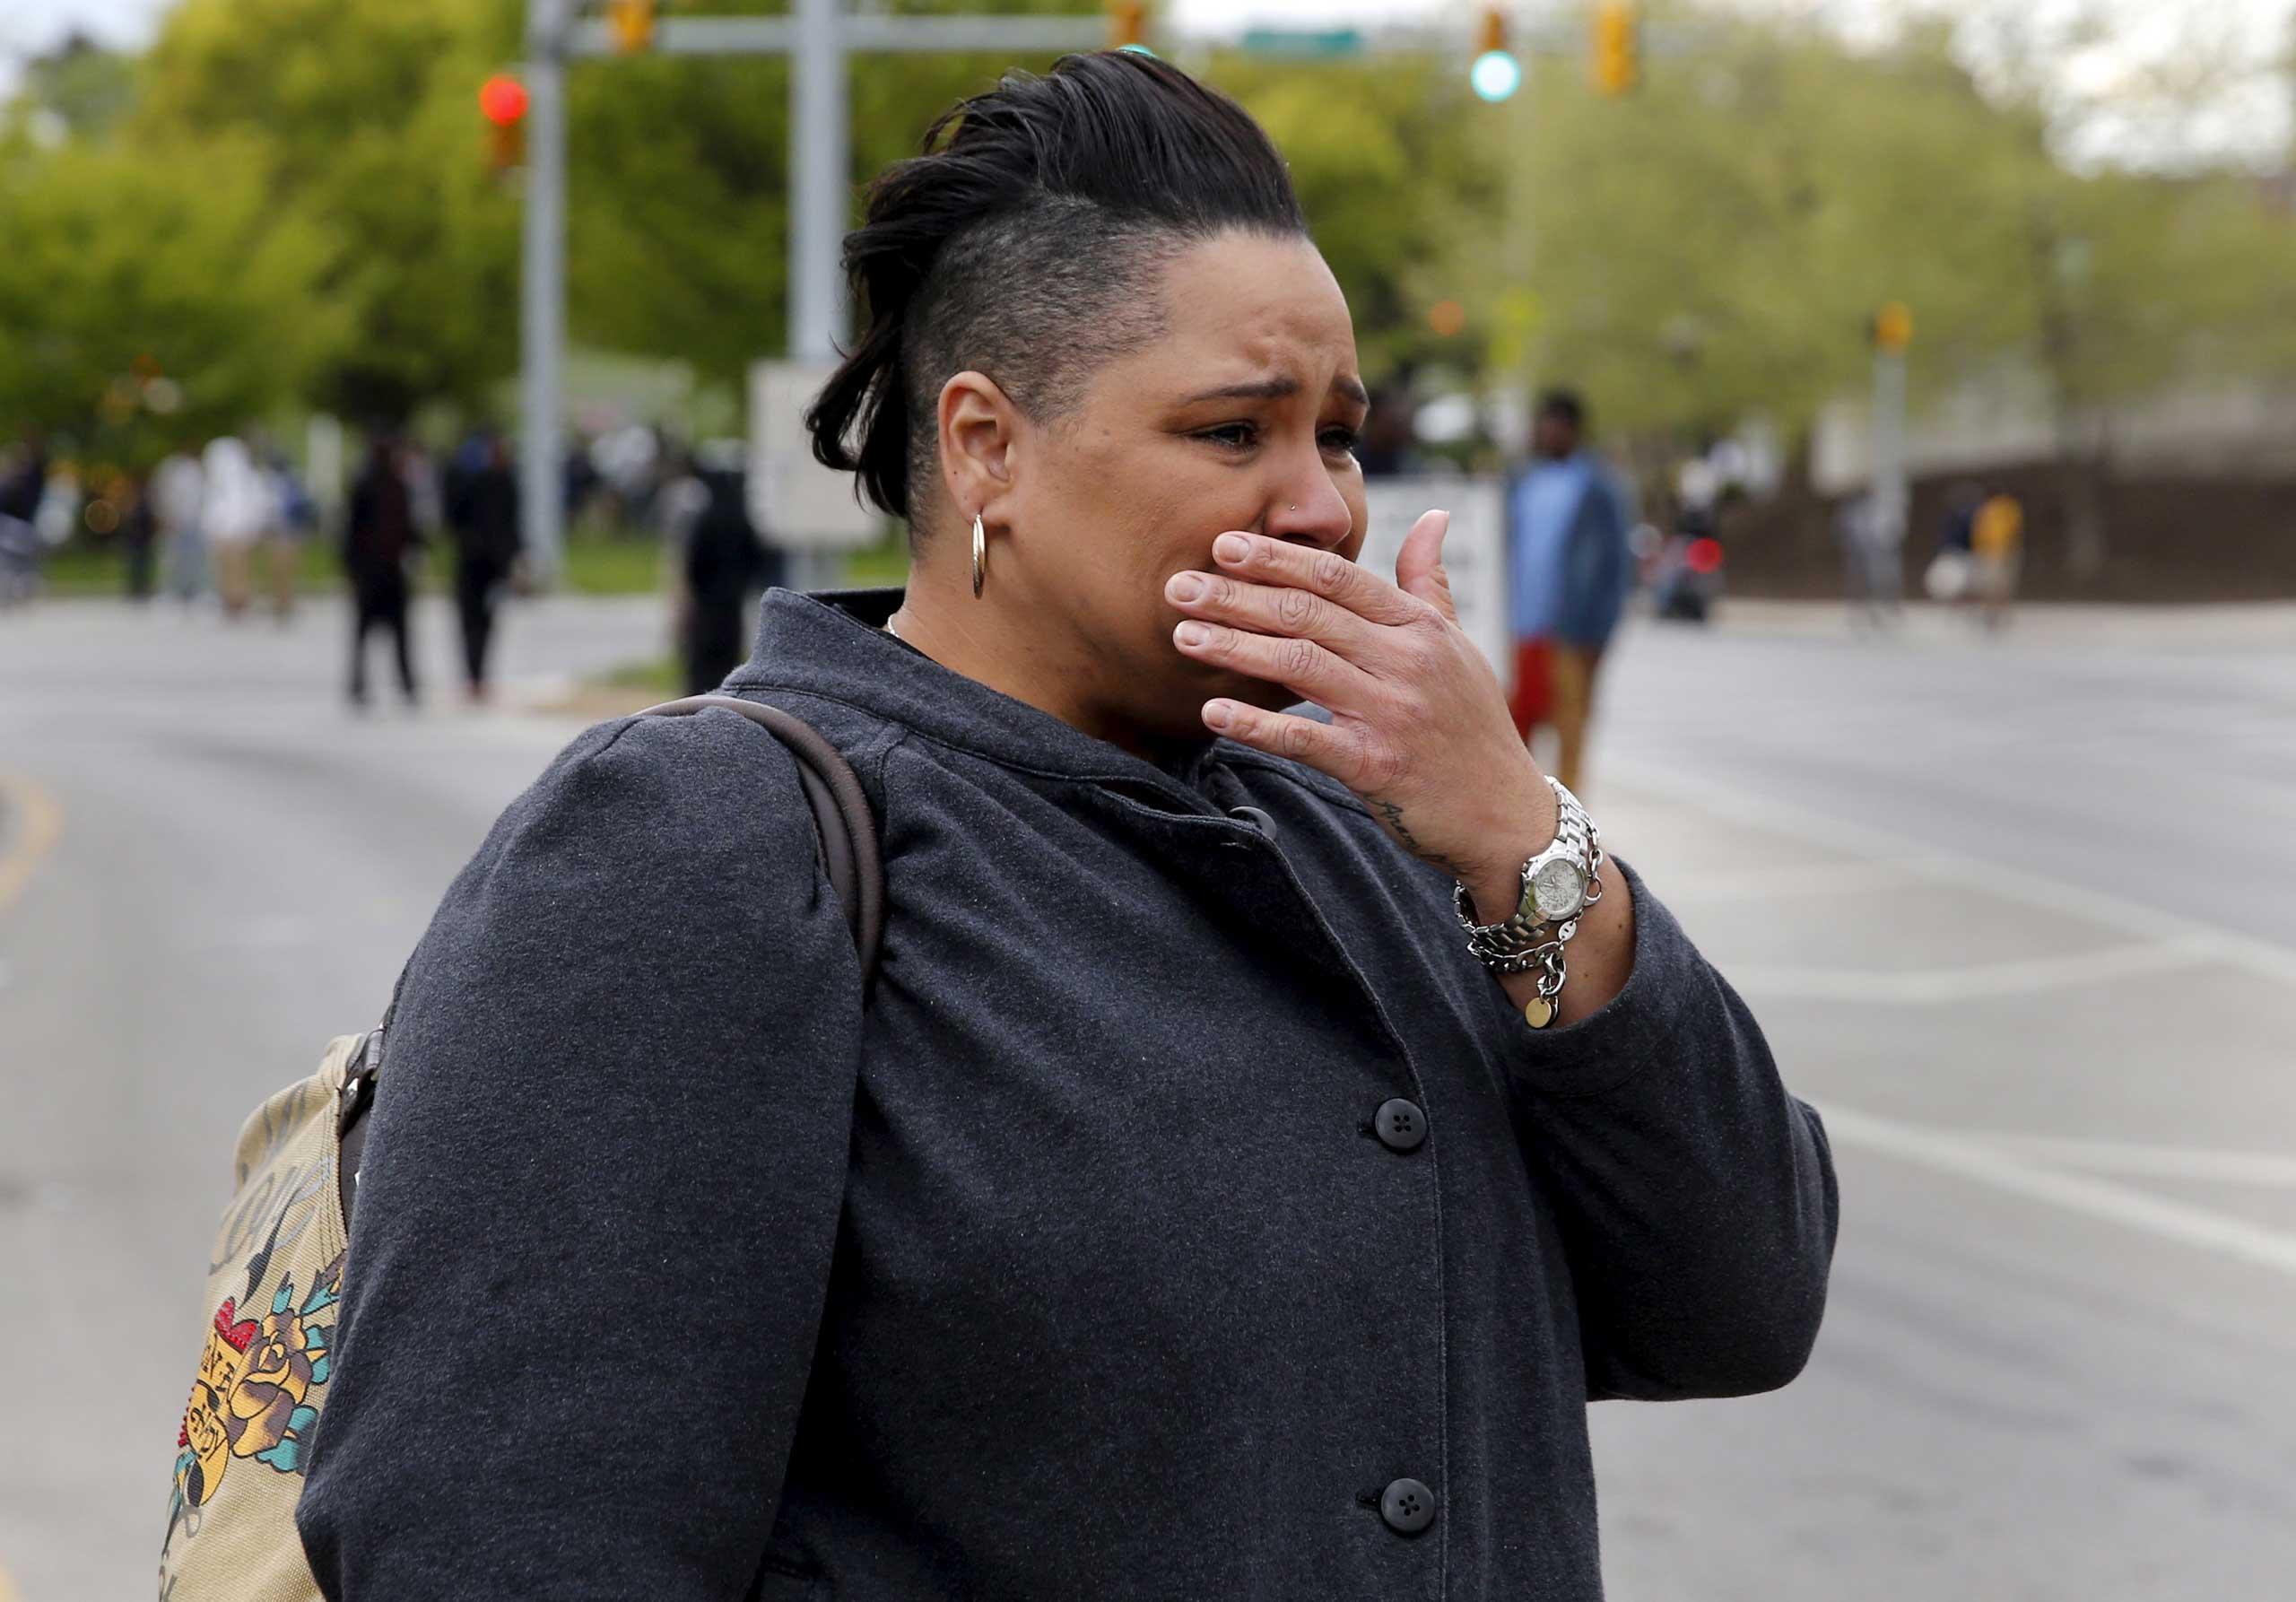 A woman cries as demonstrators throw rocks at police officers during clashes in Baltimore on April 27, 2015.